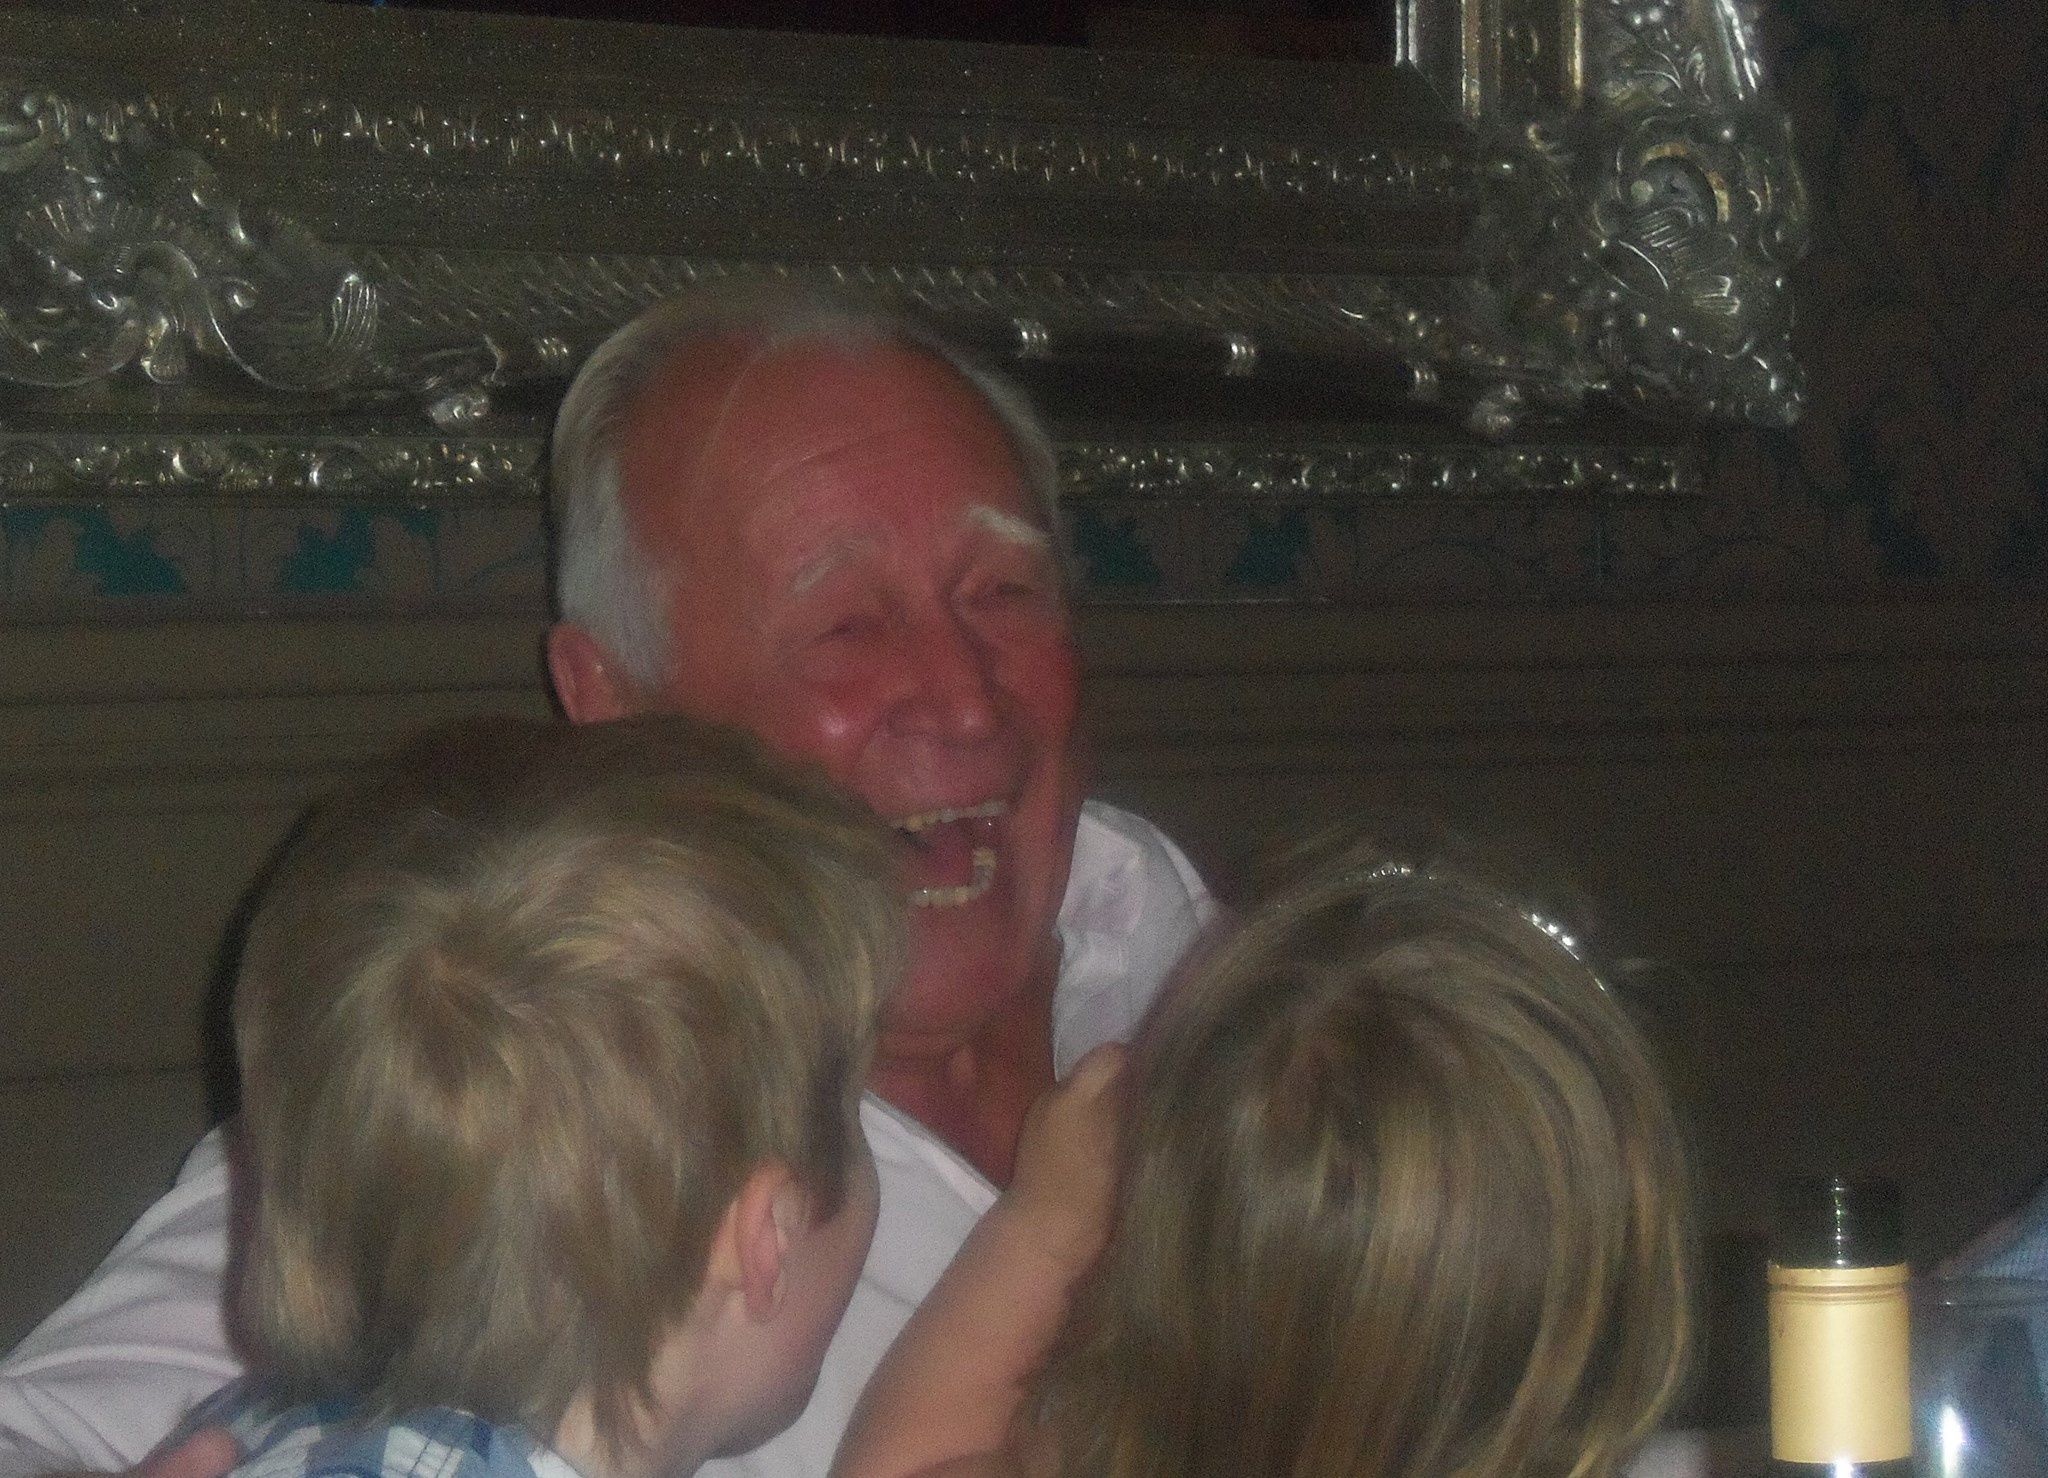 we will miss that laugh and your jokes xx